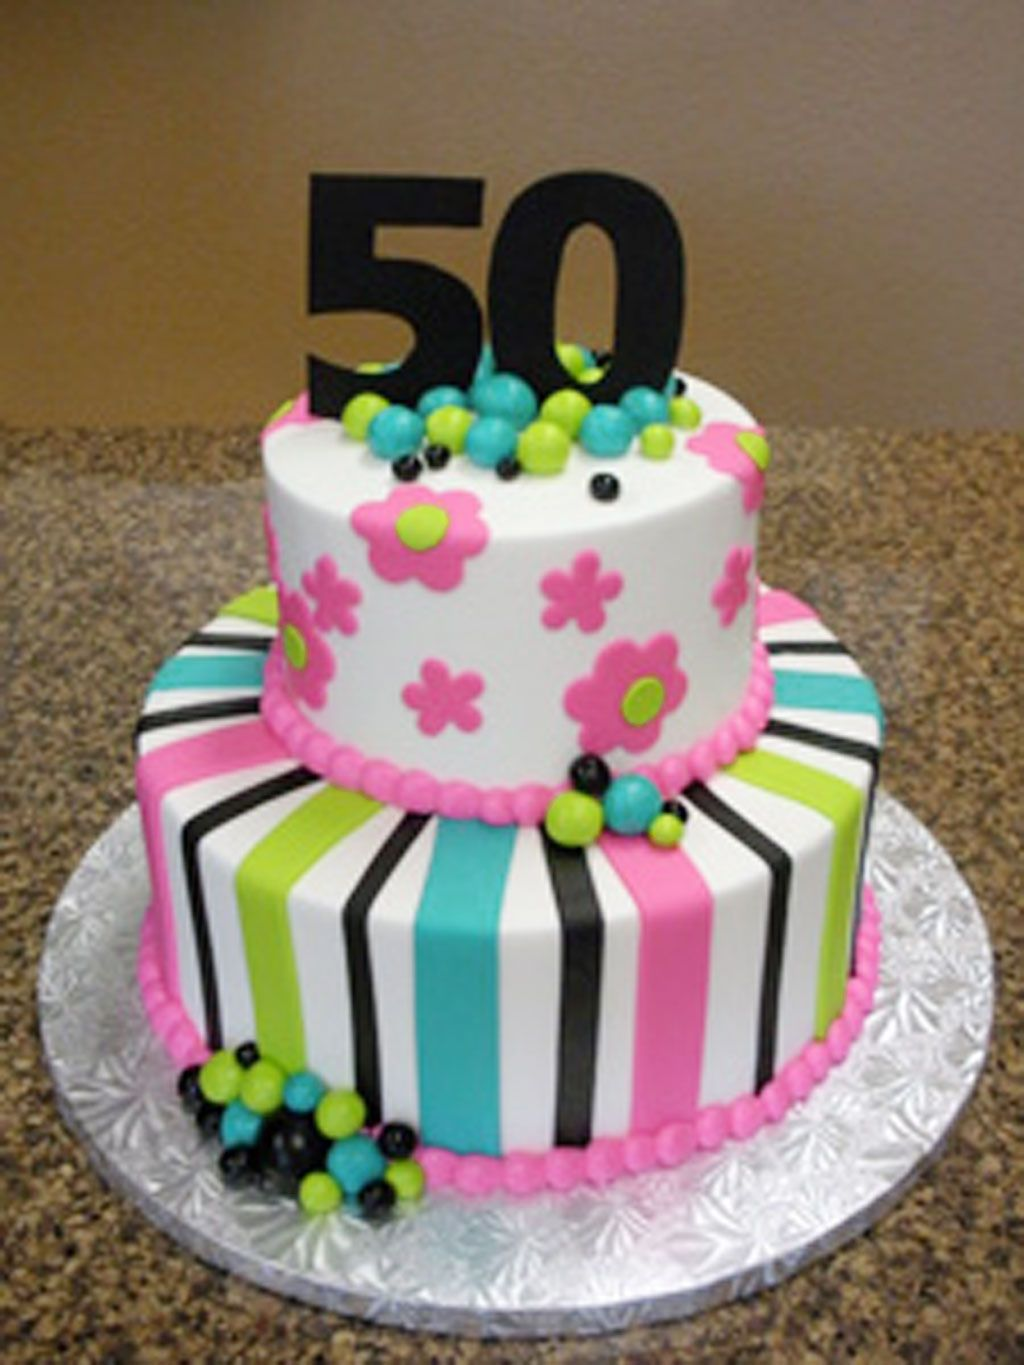 50th birthday cakes pictures for women projects to try pinterest birthday cakes designs with the cake decorating birthday party items that you can get all the fun and unique ideas publicscrutiny Choice Image